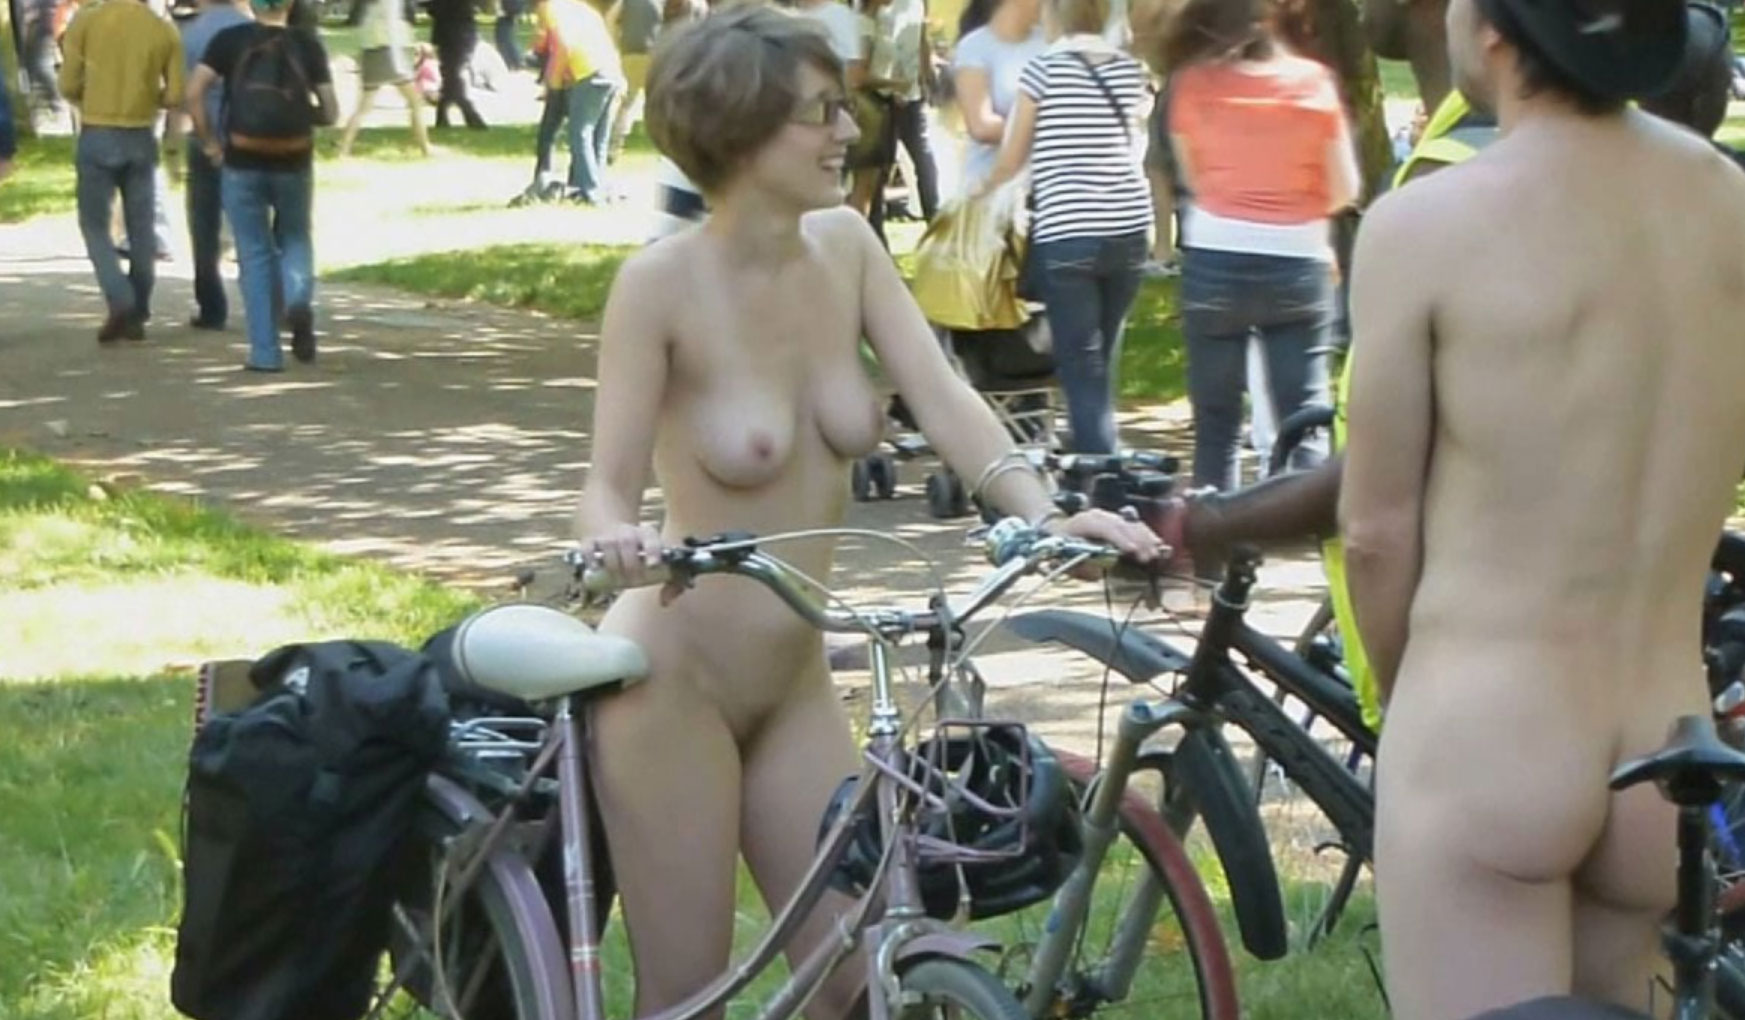 Naked Bike Ride in London